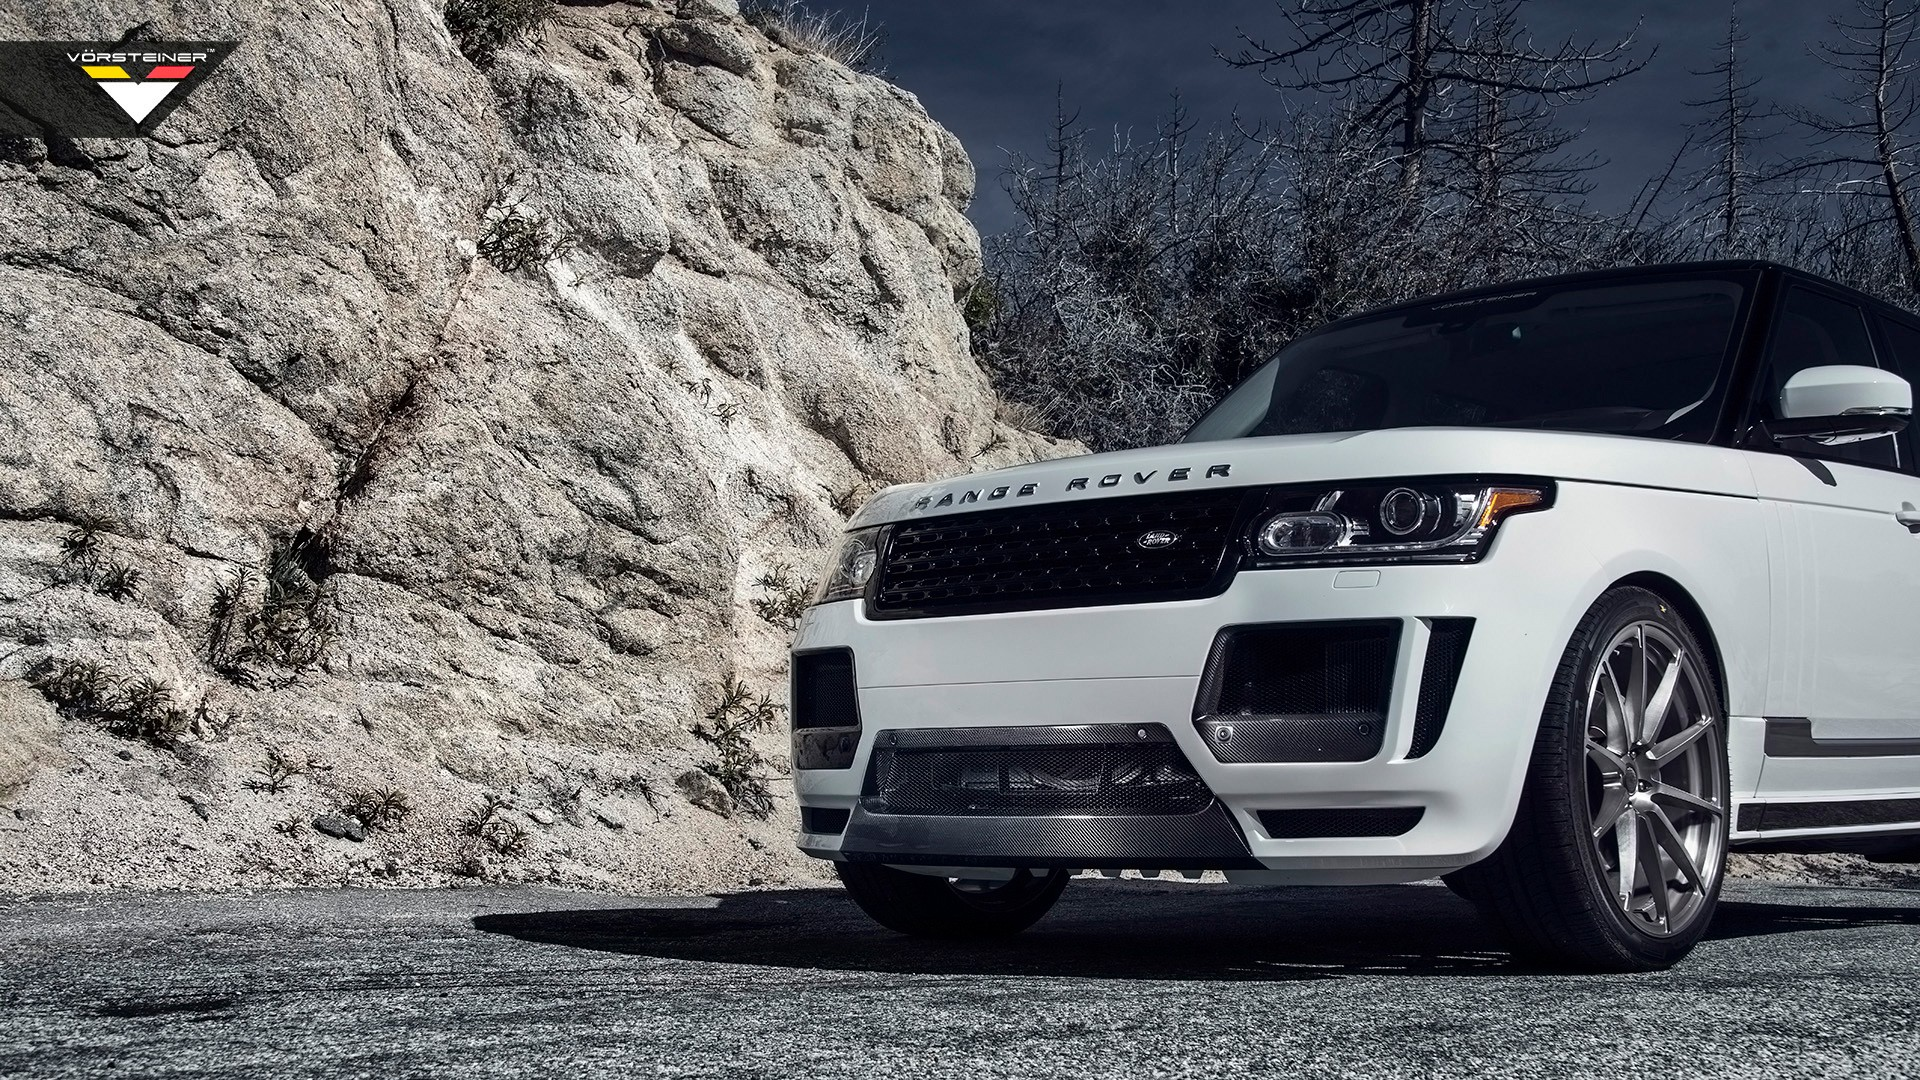 Mercedes Benz Hd Wallpapers 1080p 2014 Vorsteiner Range Rover Veritas Wallpaper Hd Car